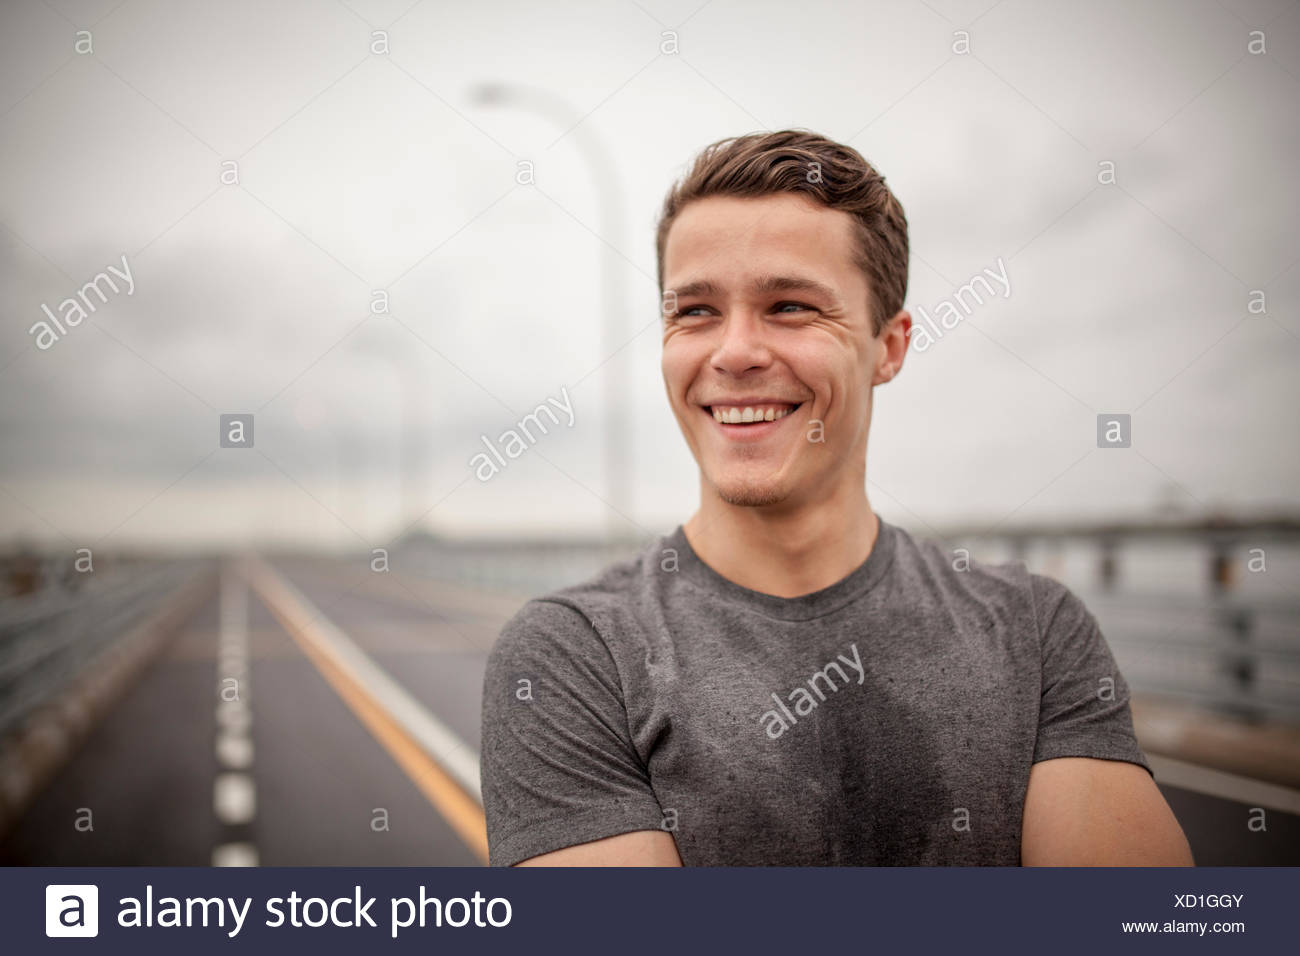 Young man smiling, portrait Photo Stock